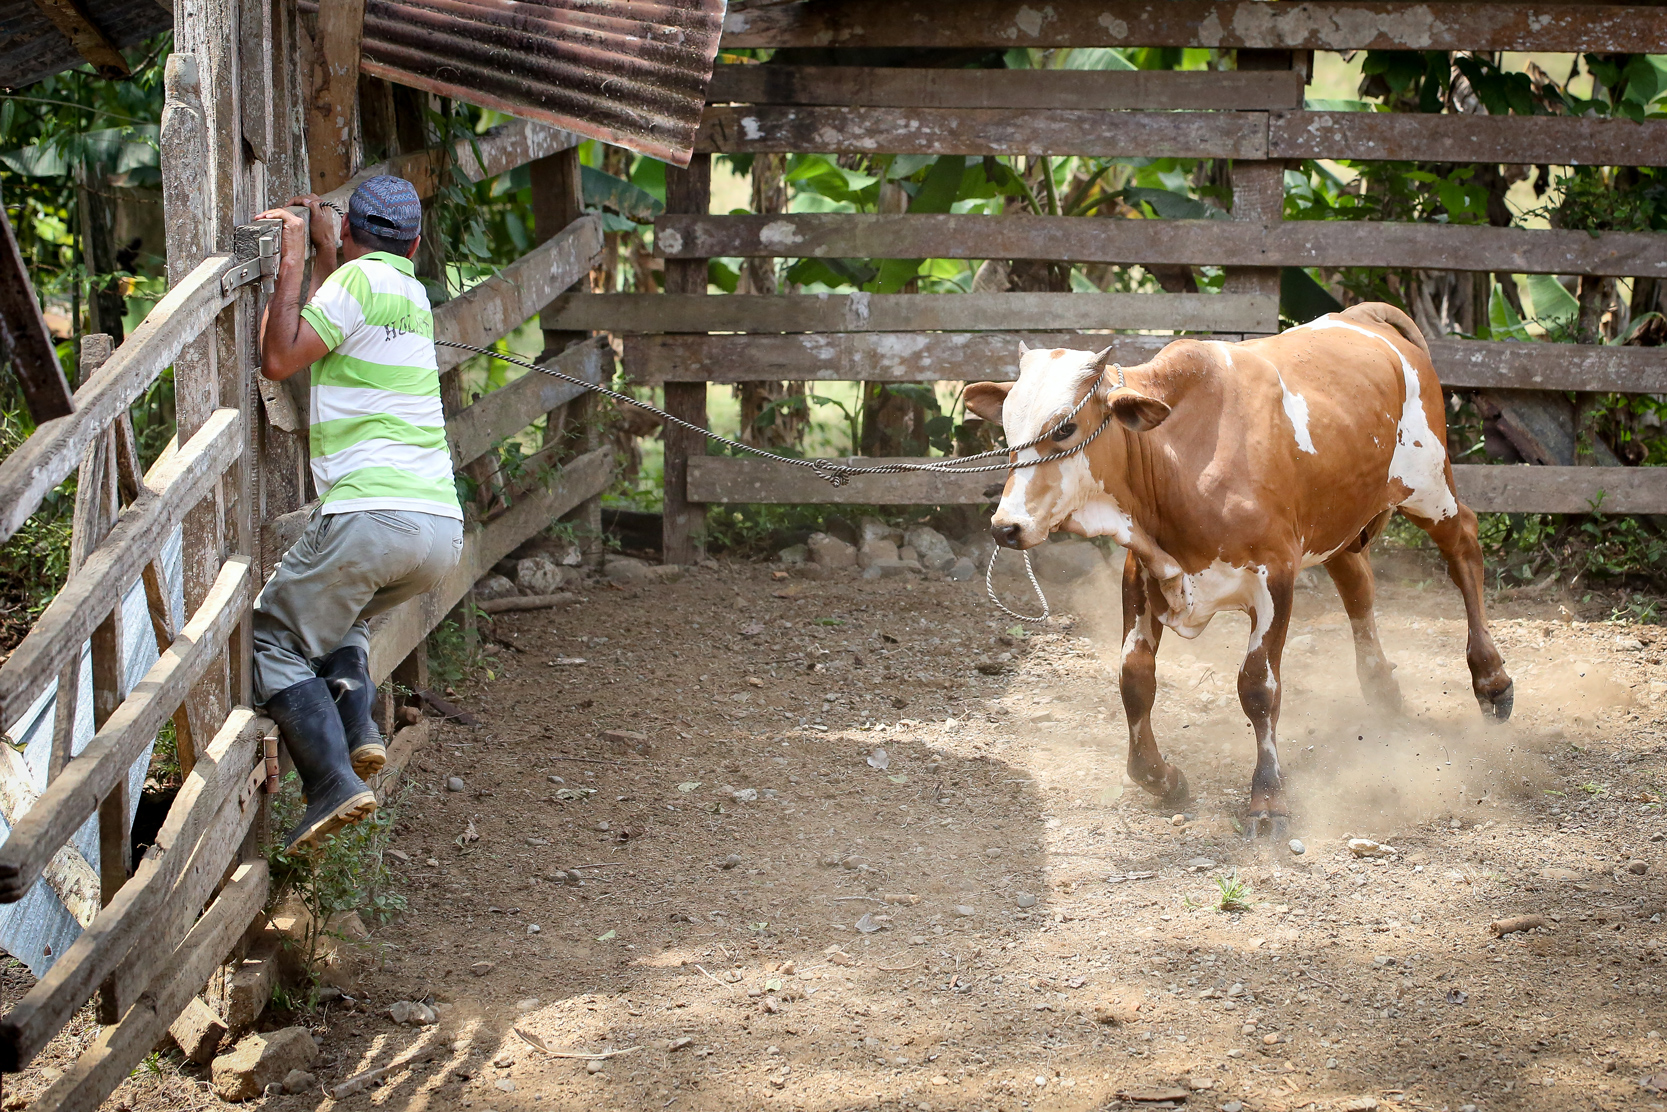 A local man known as Gato clambers up a fence to avoid a charging bull.